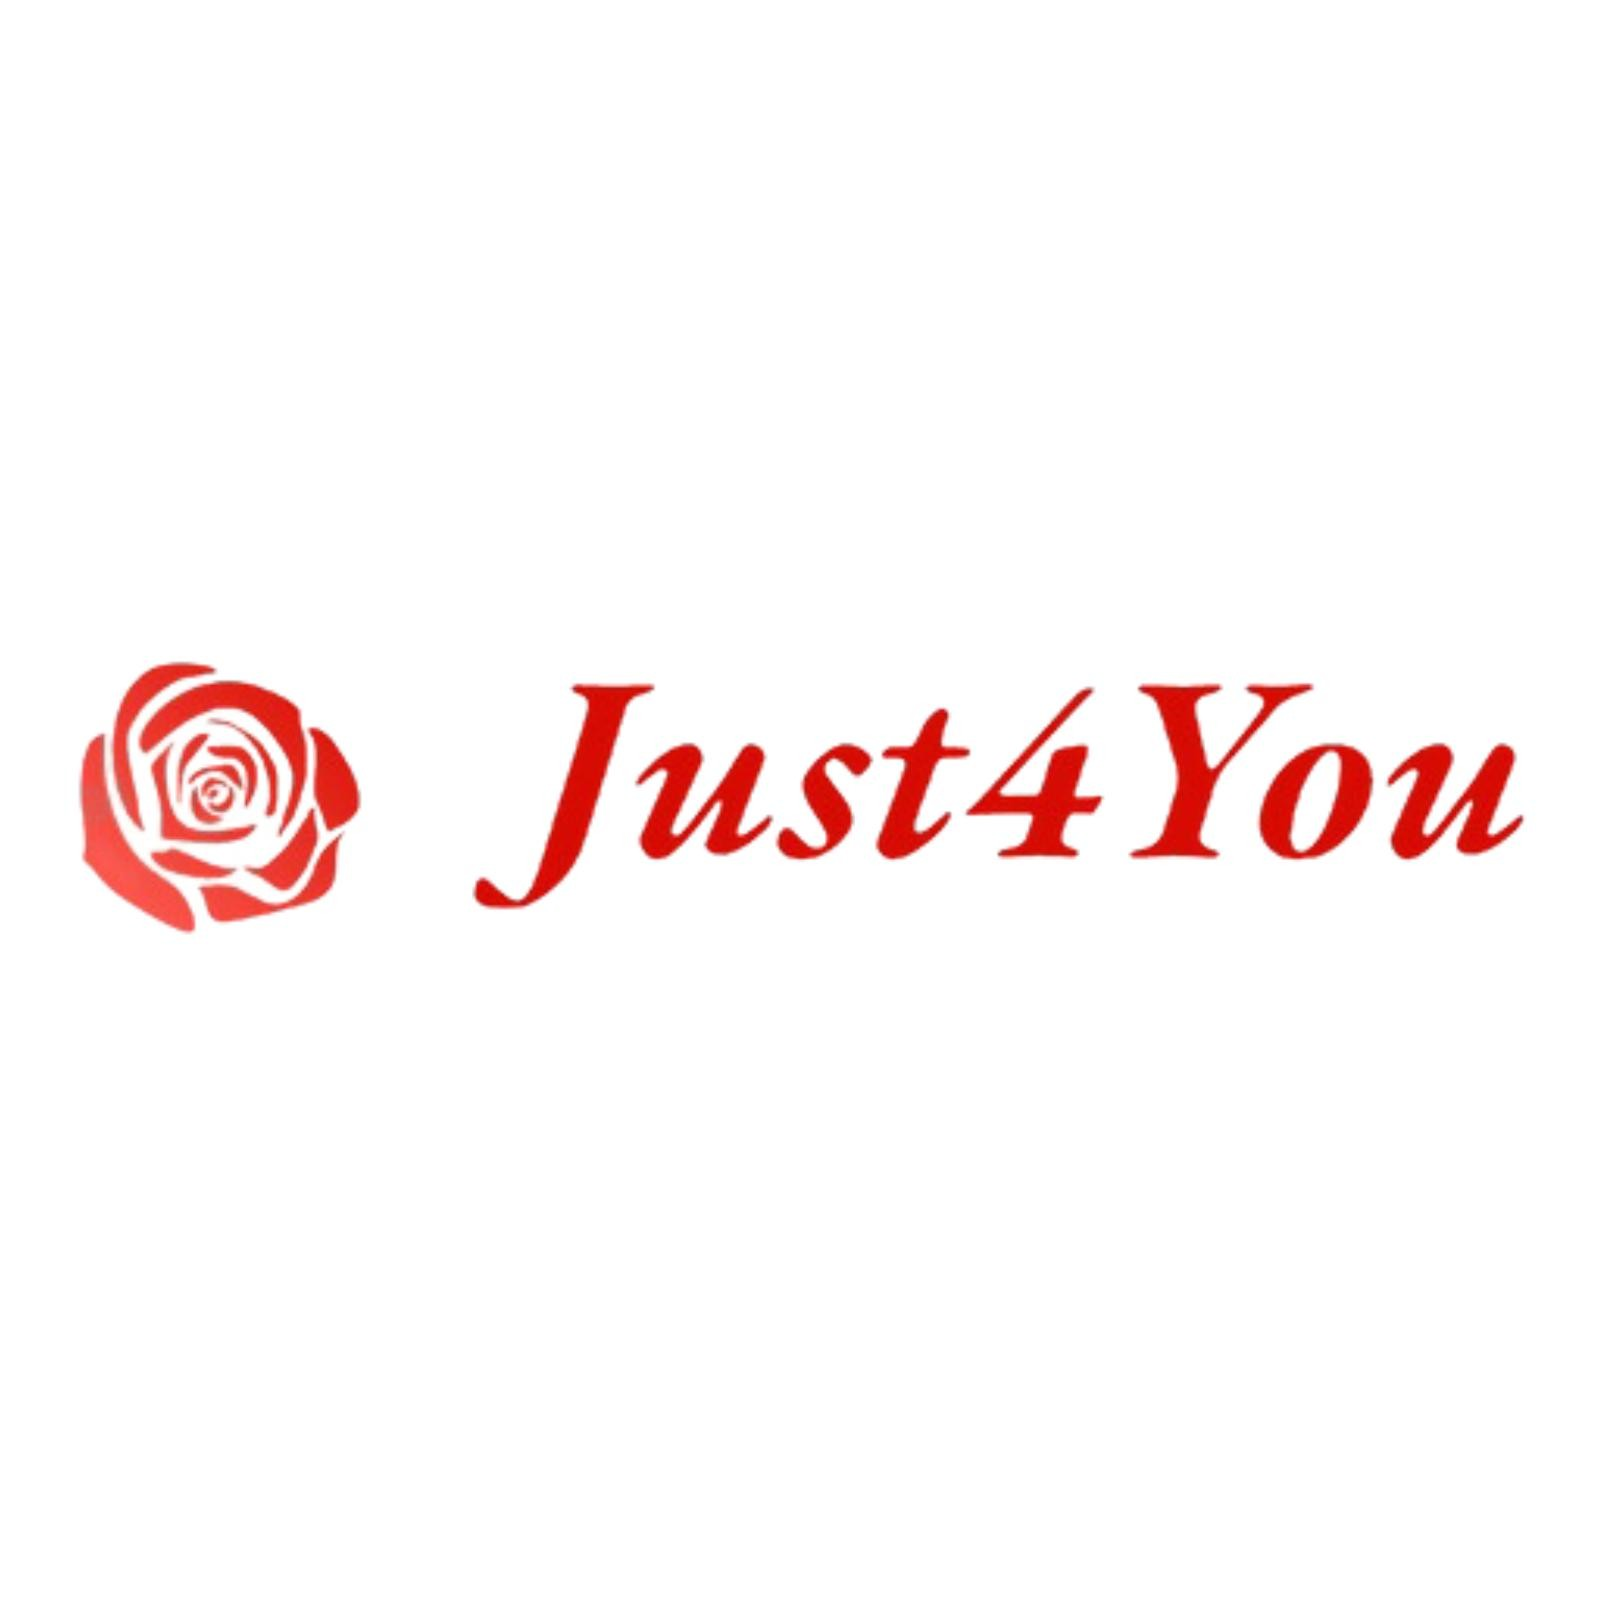 Just4You